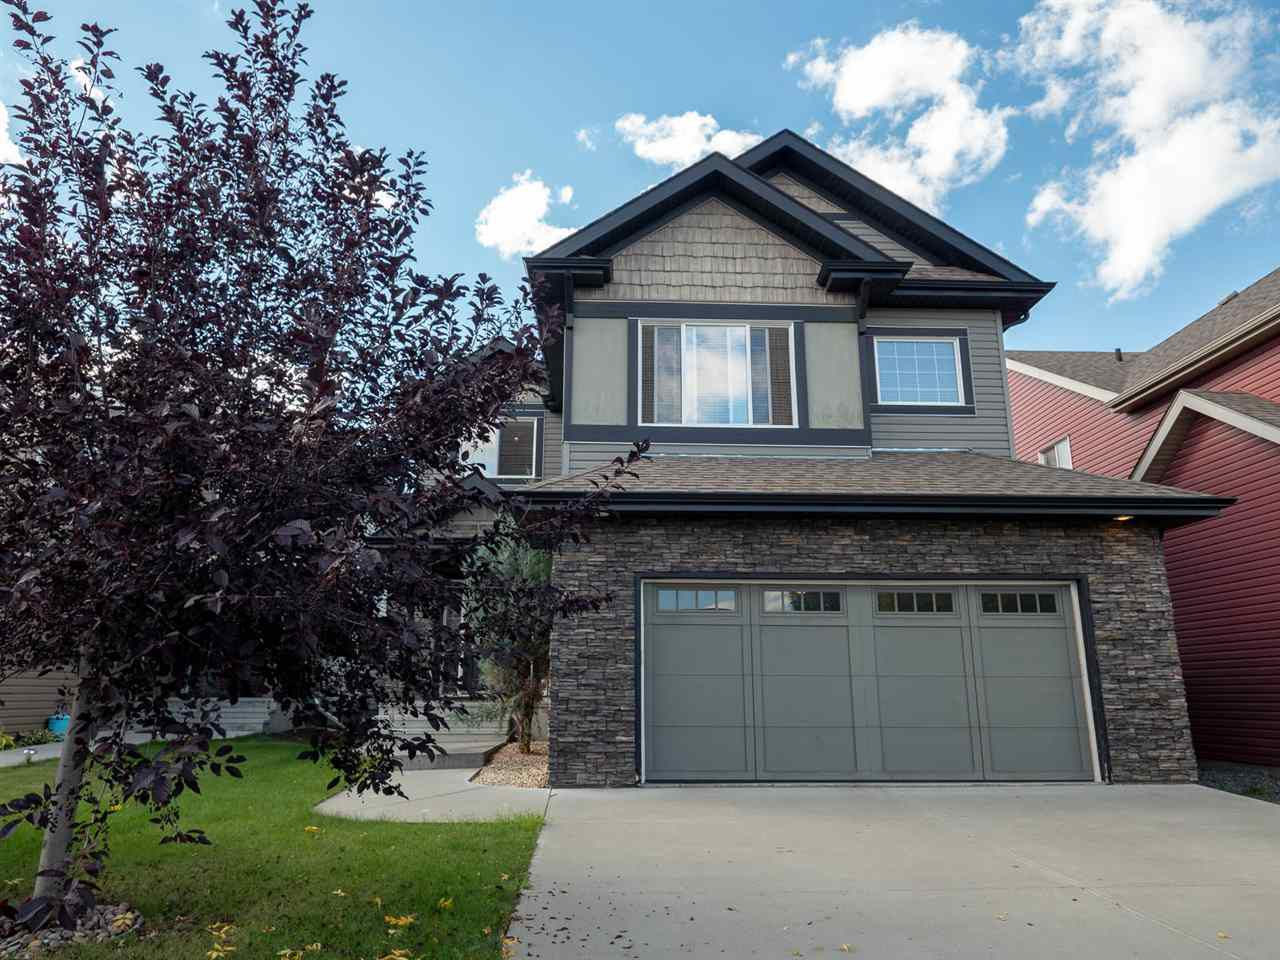 Main Photo: 3247 WHITELAW Drive in Edmonton: Zone 56 House for sale : MLS®# E4155835